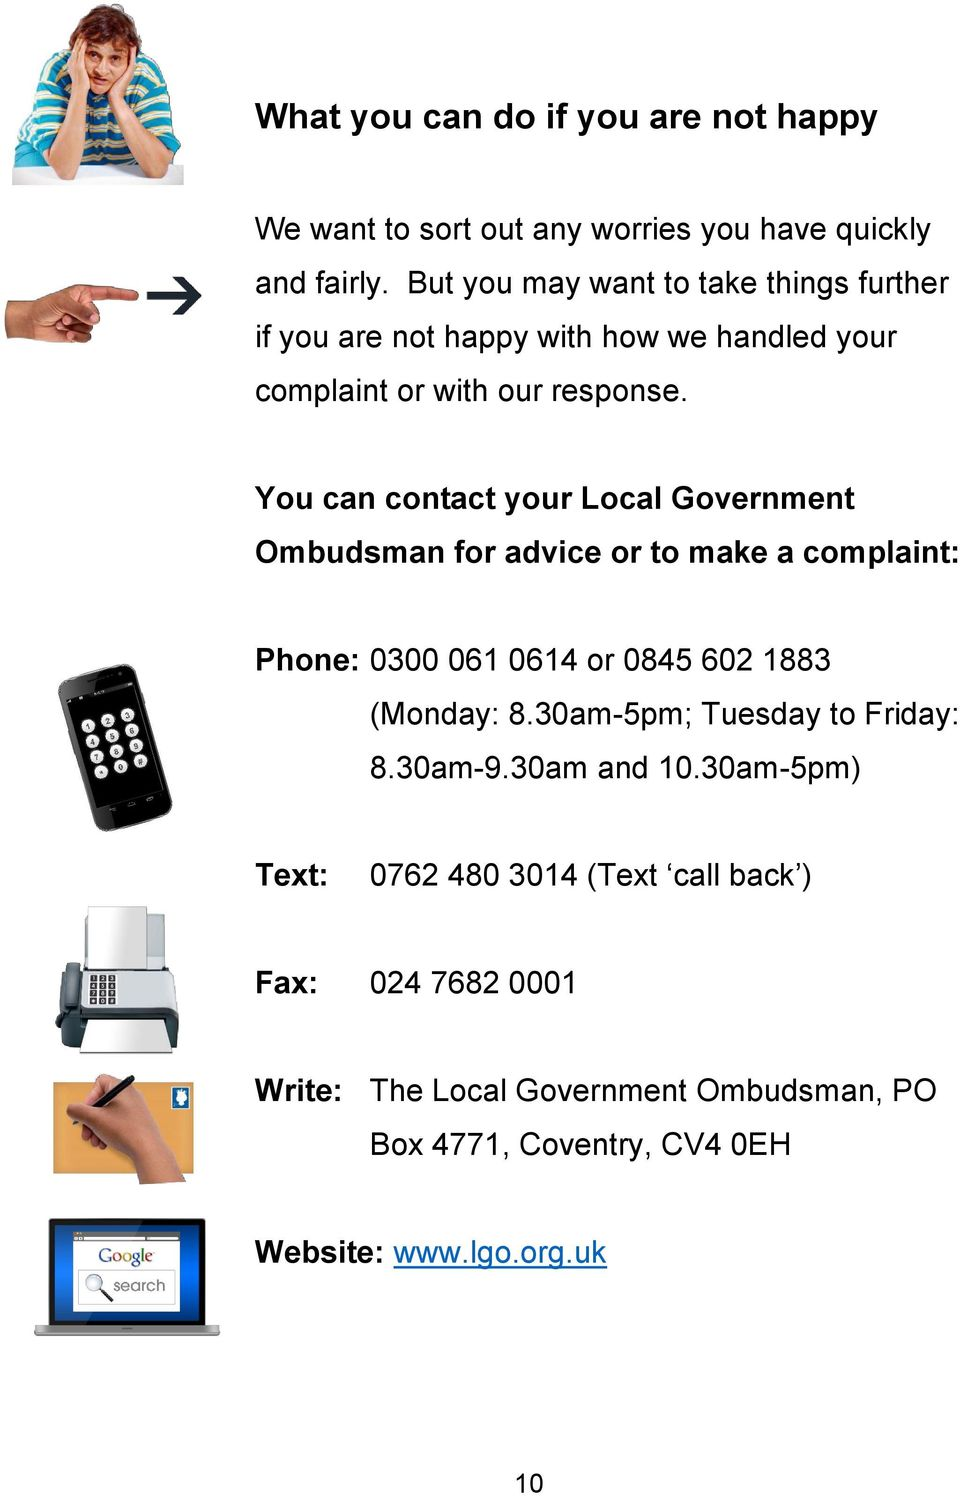 You can contact your Local Government Ombudsman for advice or to make a complaint: Phone: 0300 061 0614 or 0845 602 1883 (Monday: 8.